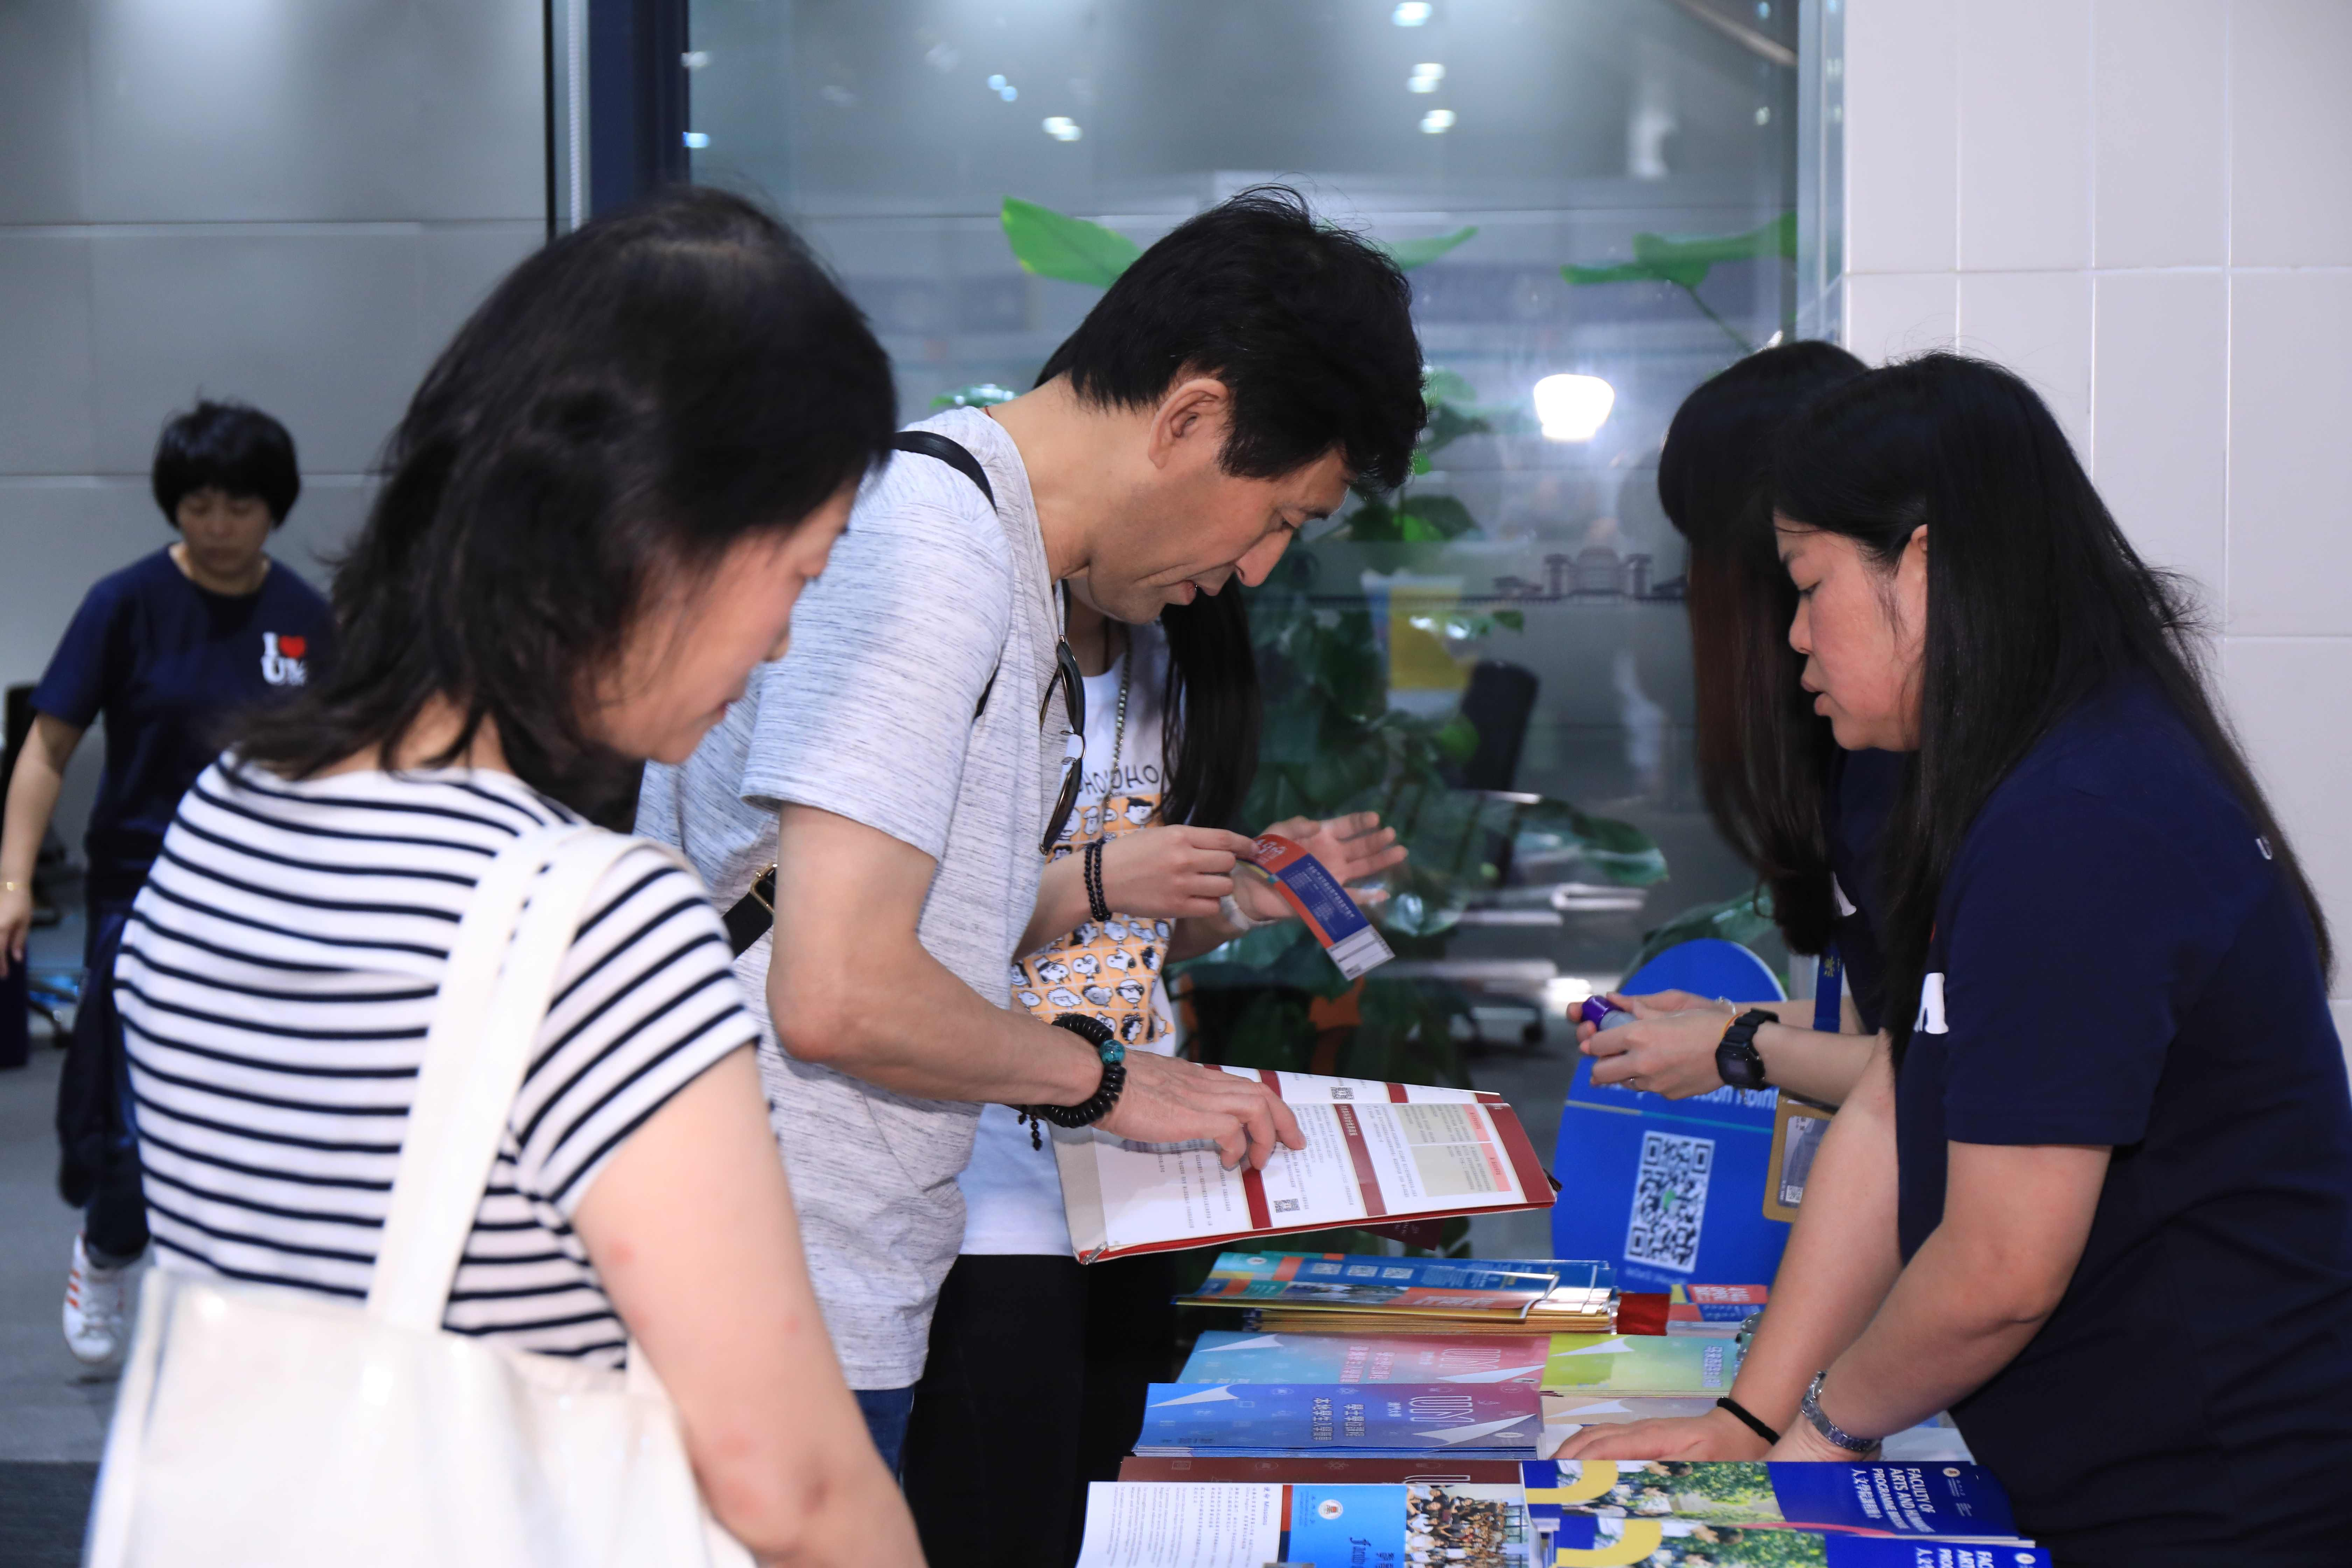 Many parents attend the Open Day with their children to obtain admission information